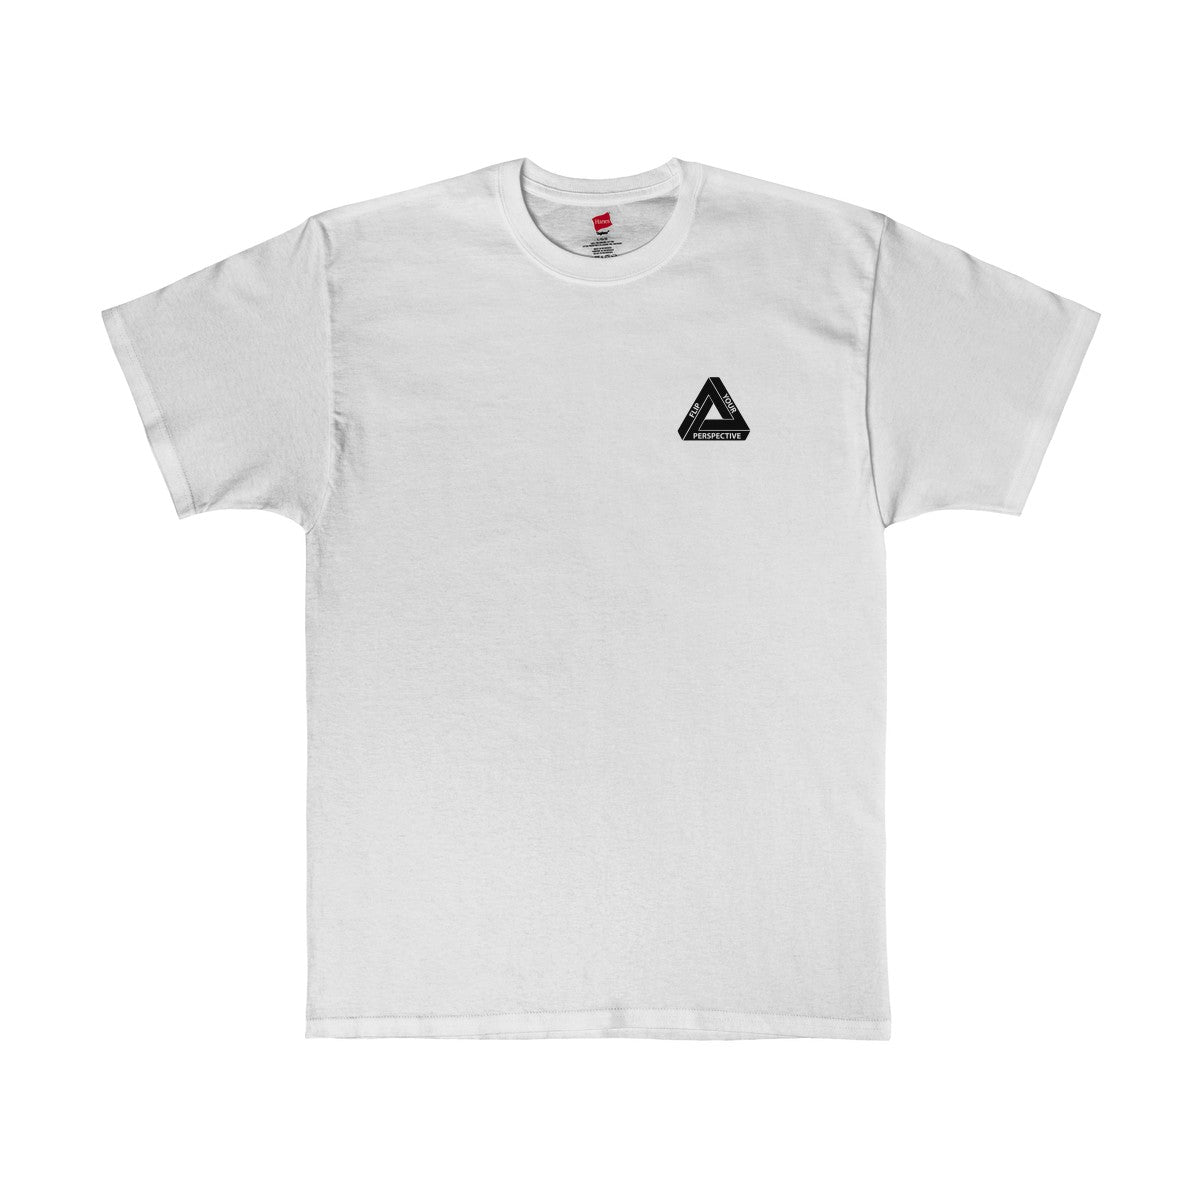 The Flip Your Perspective Triferg Tagless T-Shirt